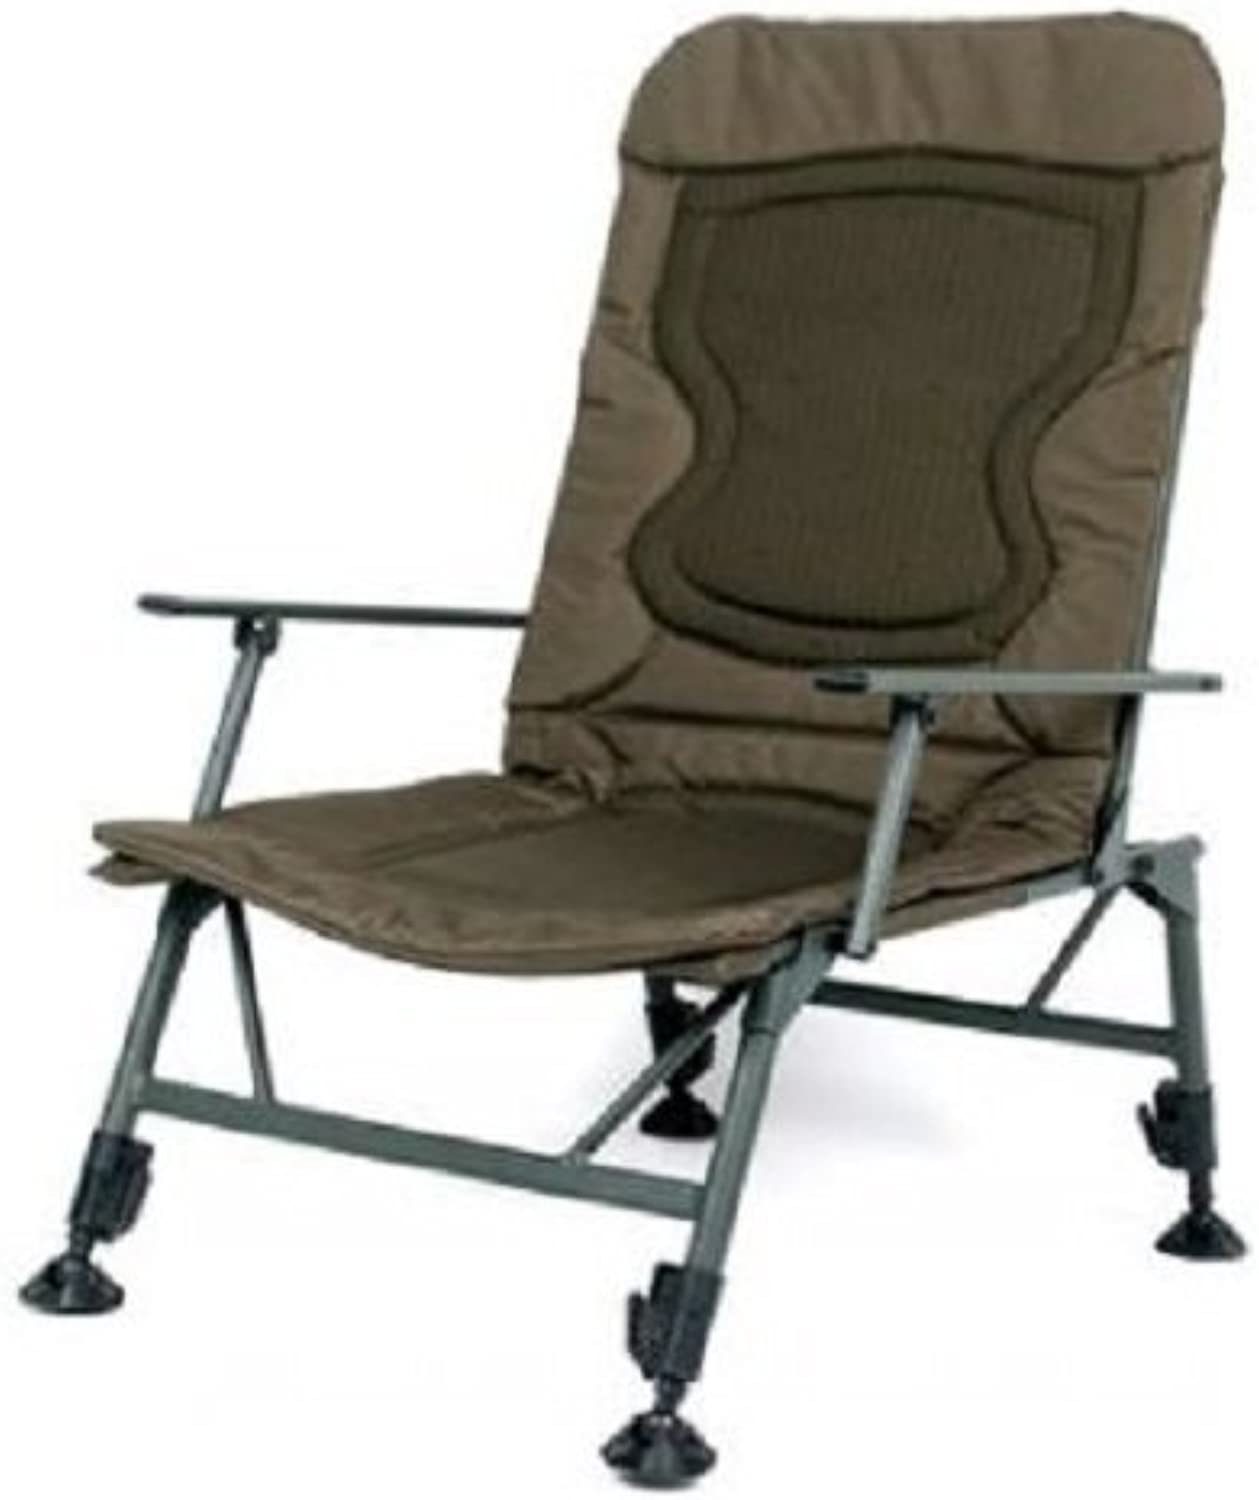 Nash KNX Armchair Wide Boy T4344 Stuhl Karpfenstuhl Sitz Angelstuhl Carpchair Chair